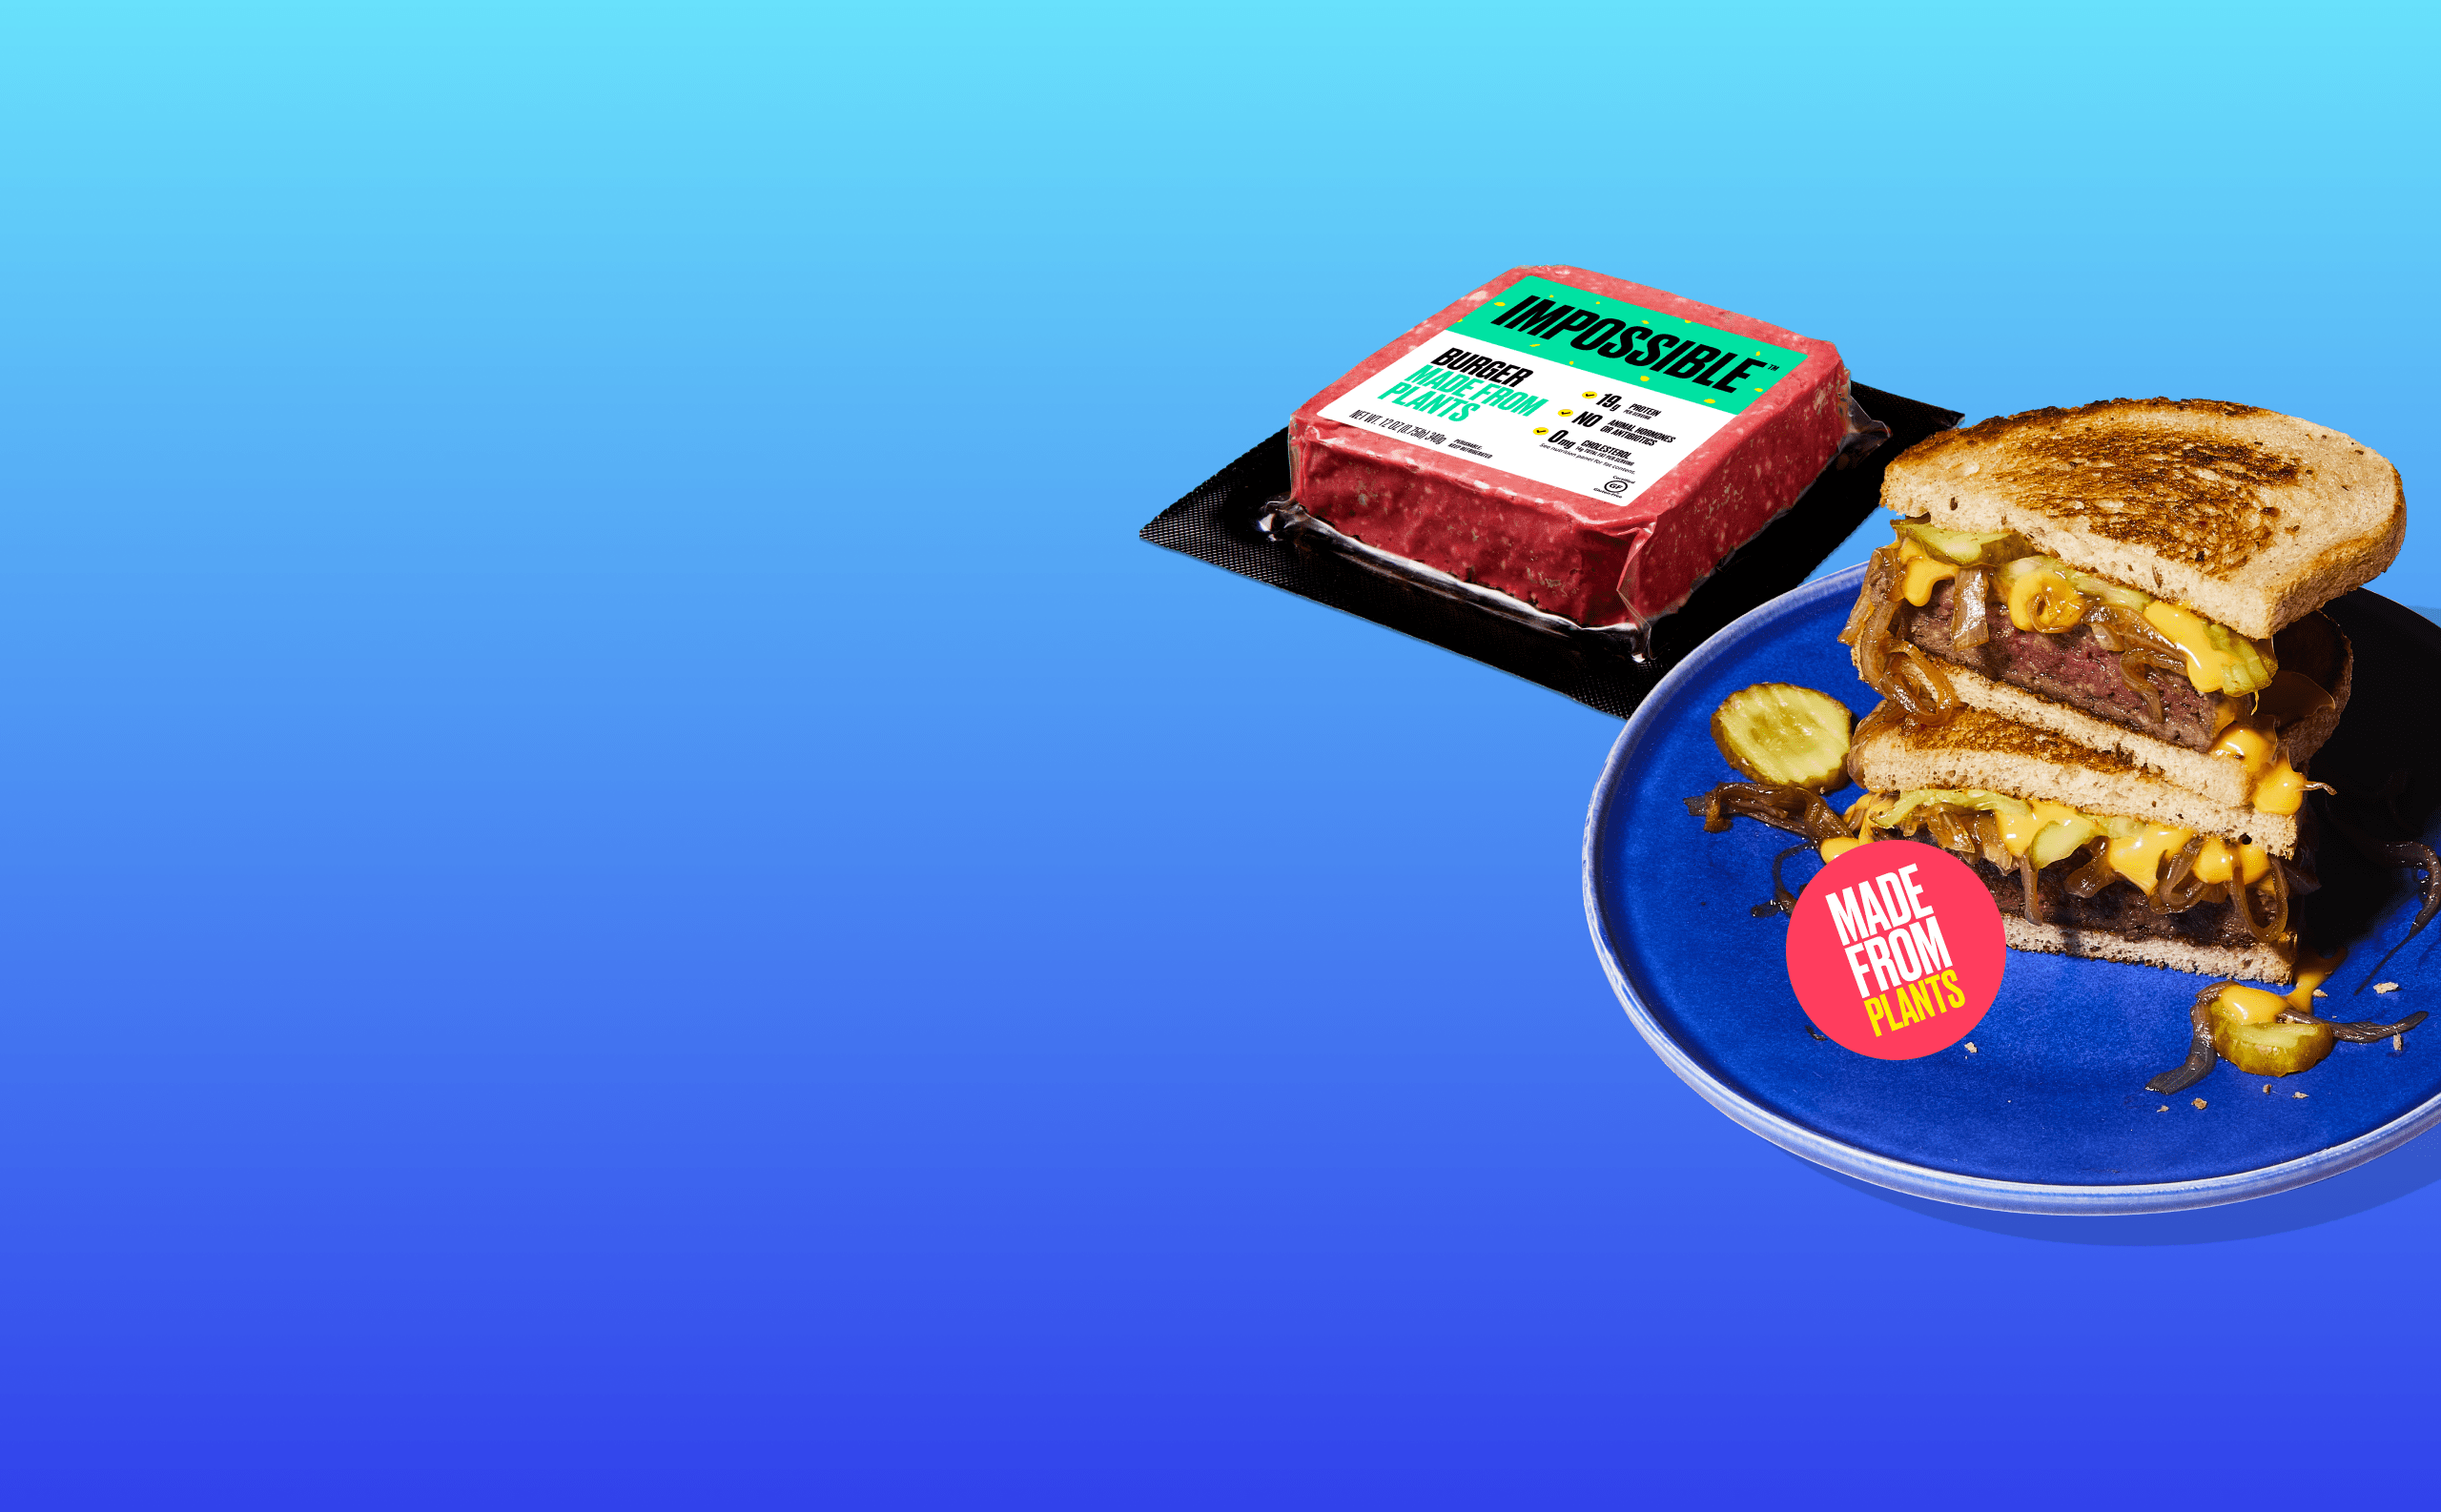 New Year New You desktop image impossible burger pack and impossible patty melt on blue background